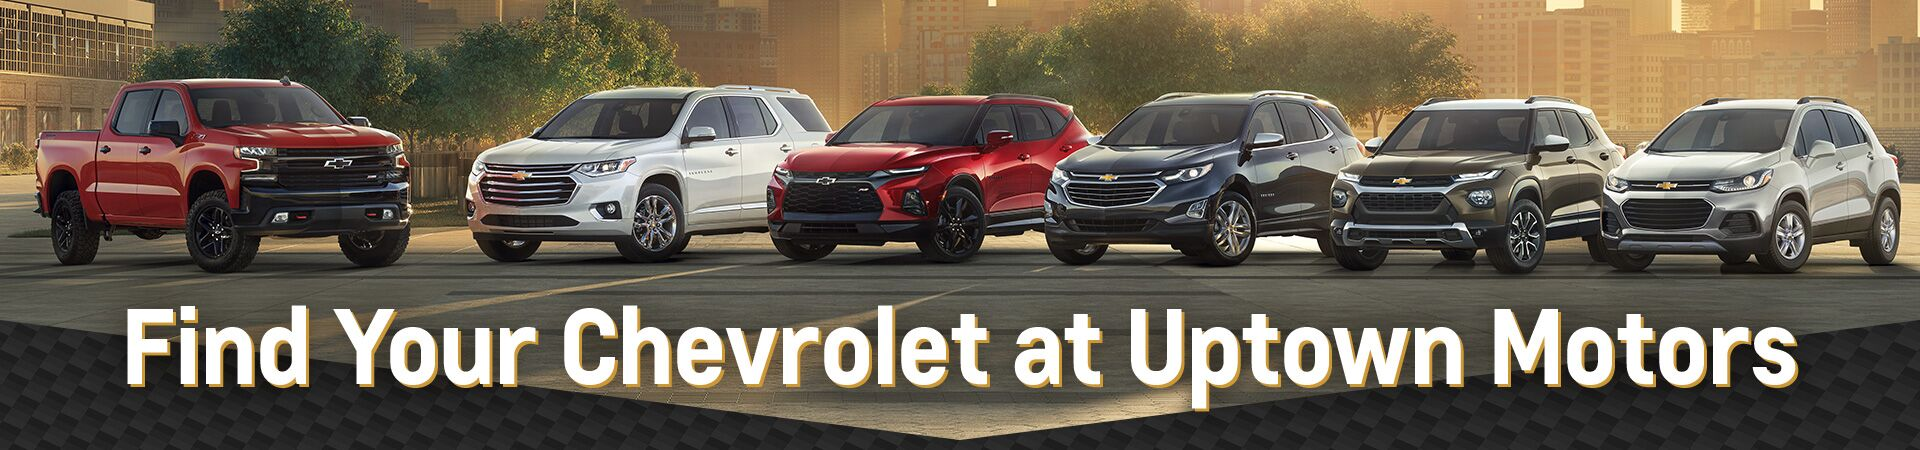 Find Your Chevrolet Here at Uptown Motors